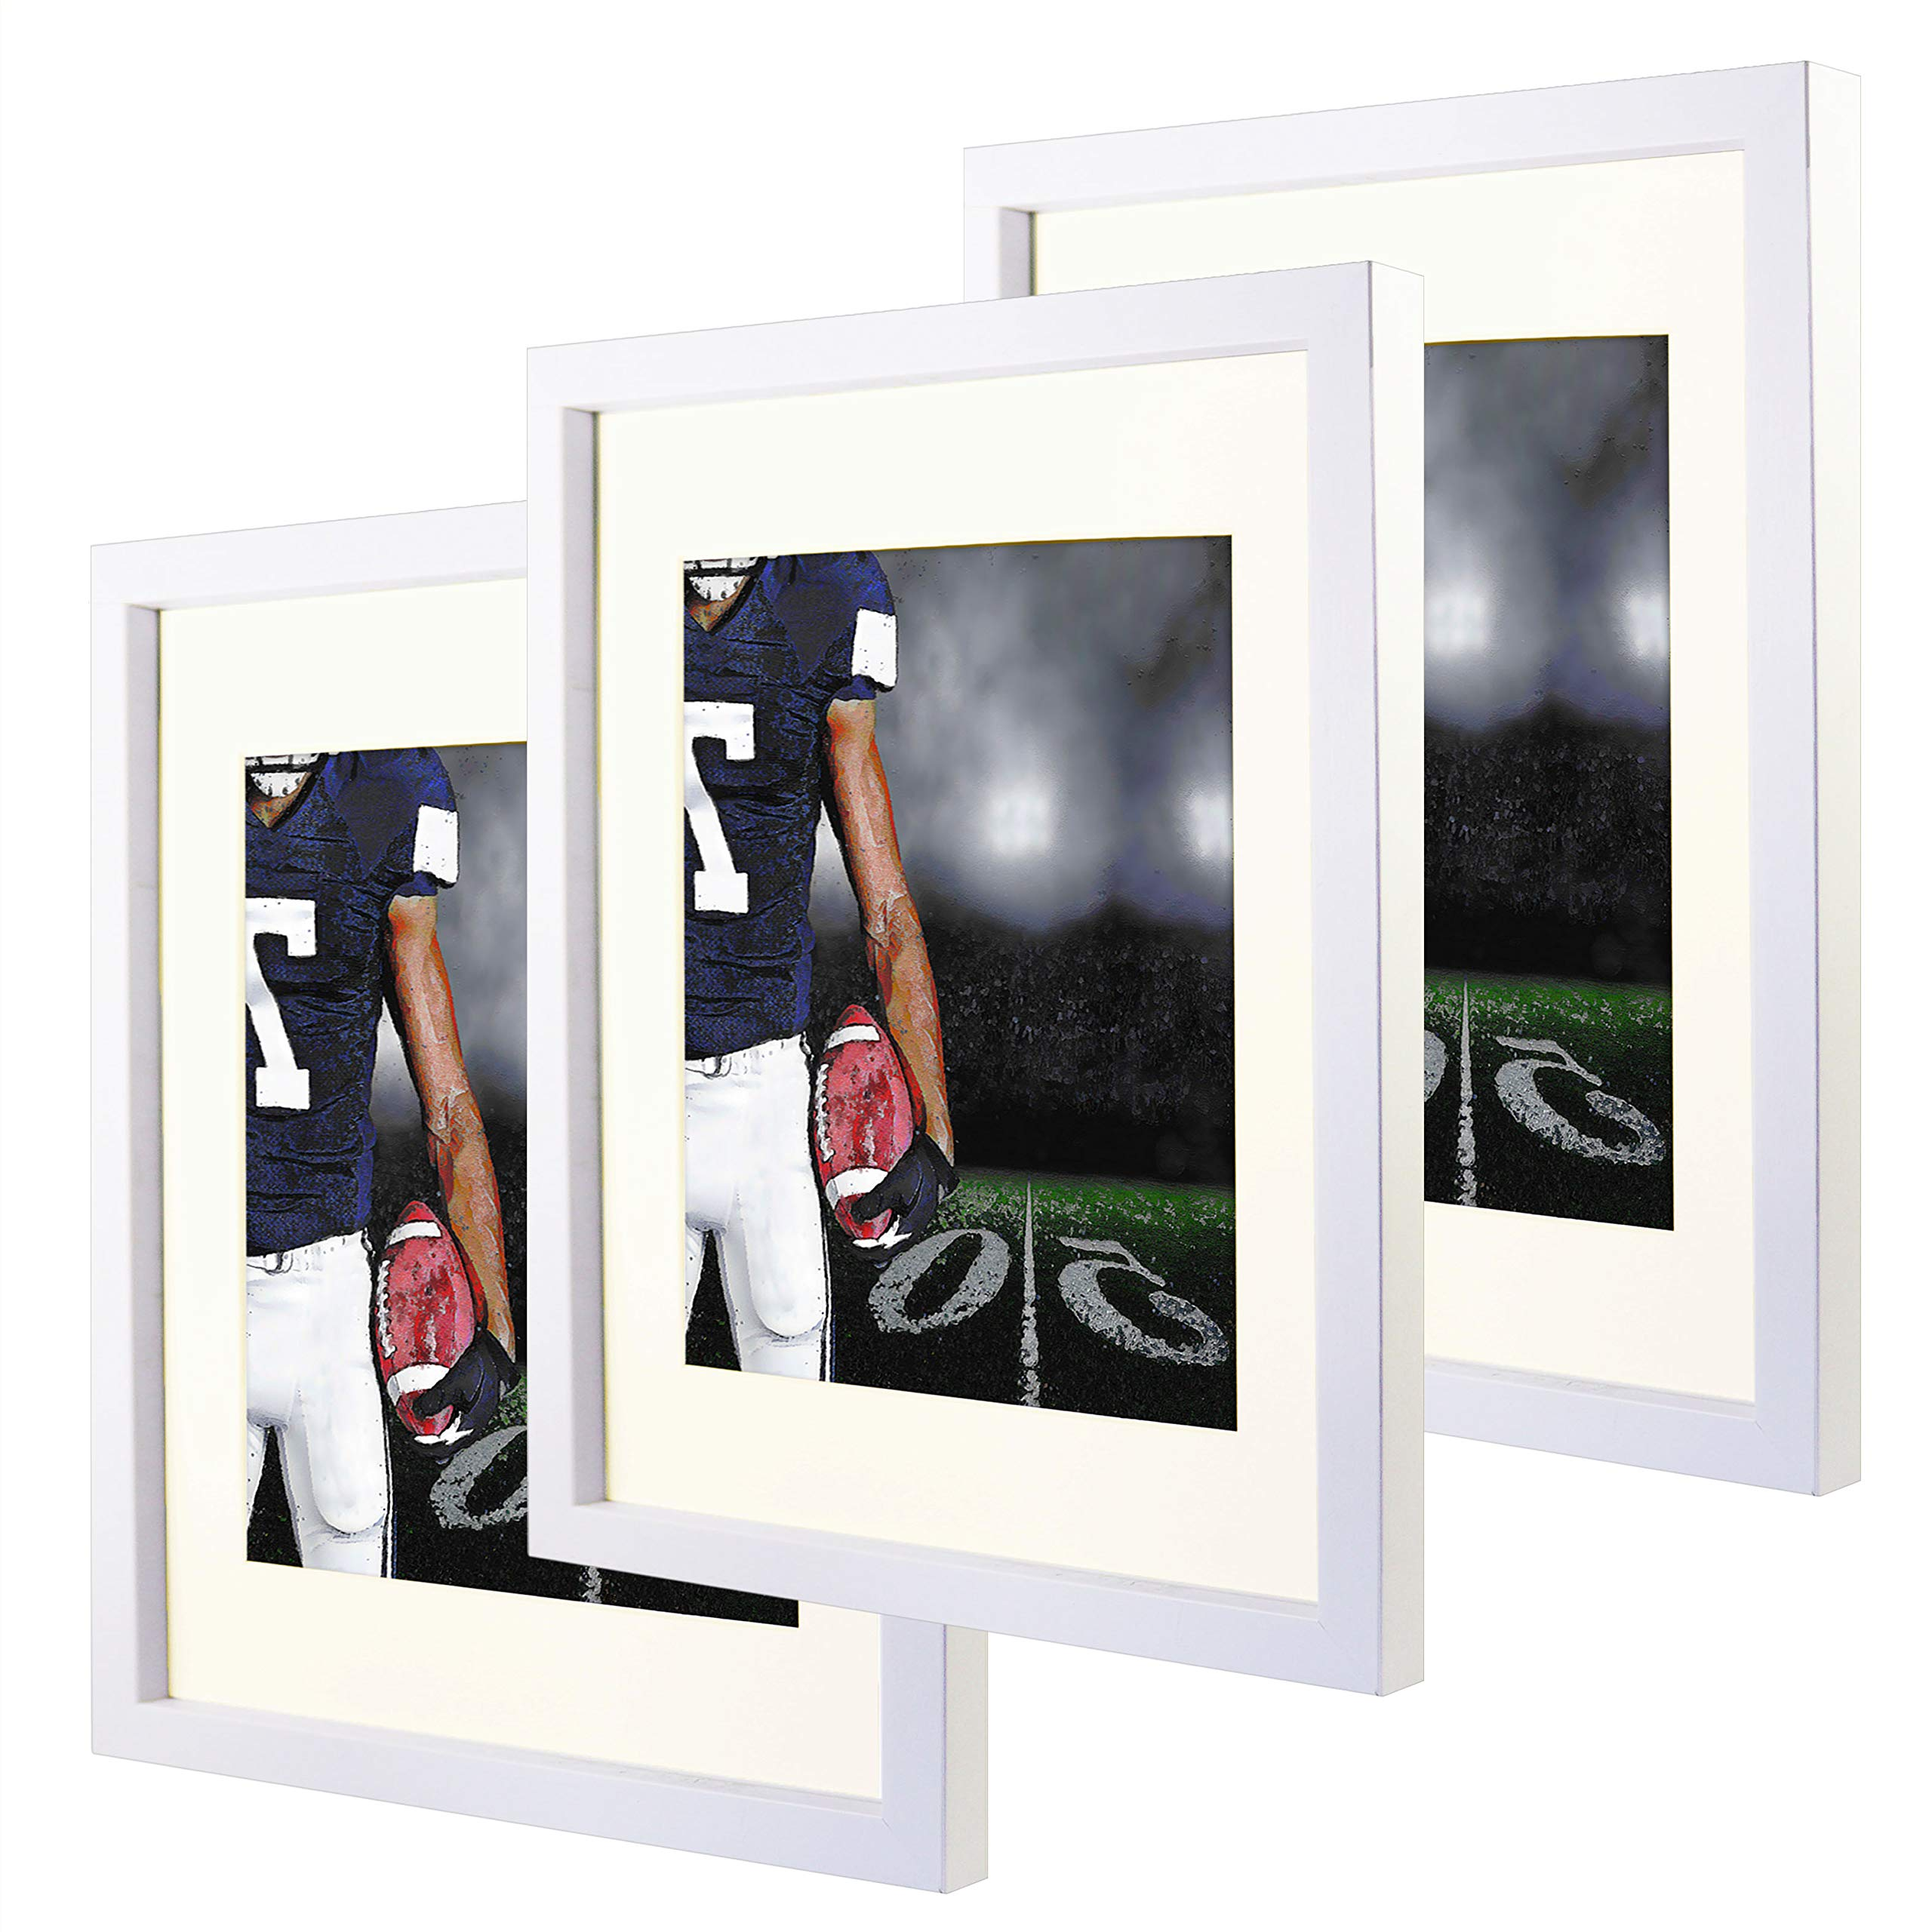 11x14 White Picture Frames with 8x10 Mat for Wall and Table Stand Photo Artwork Display Set of 3 Pack by Natural art